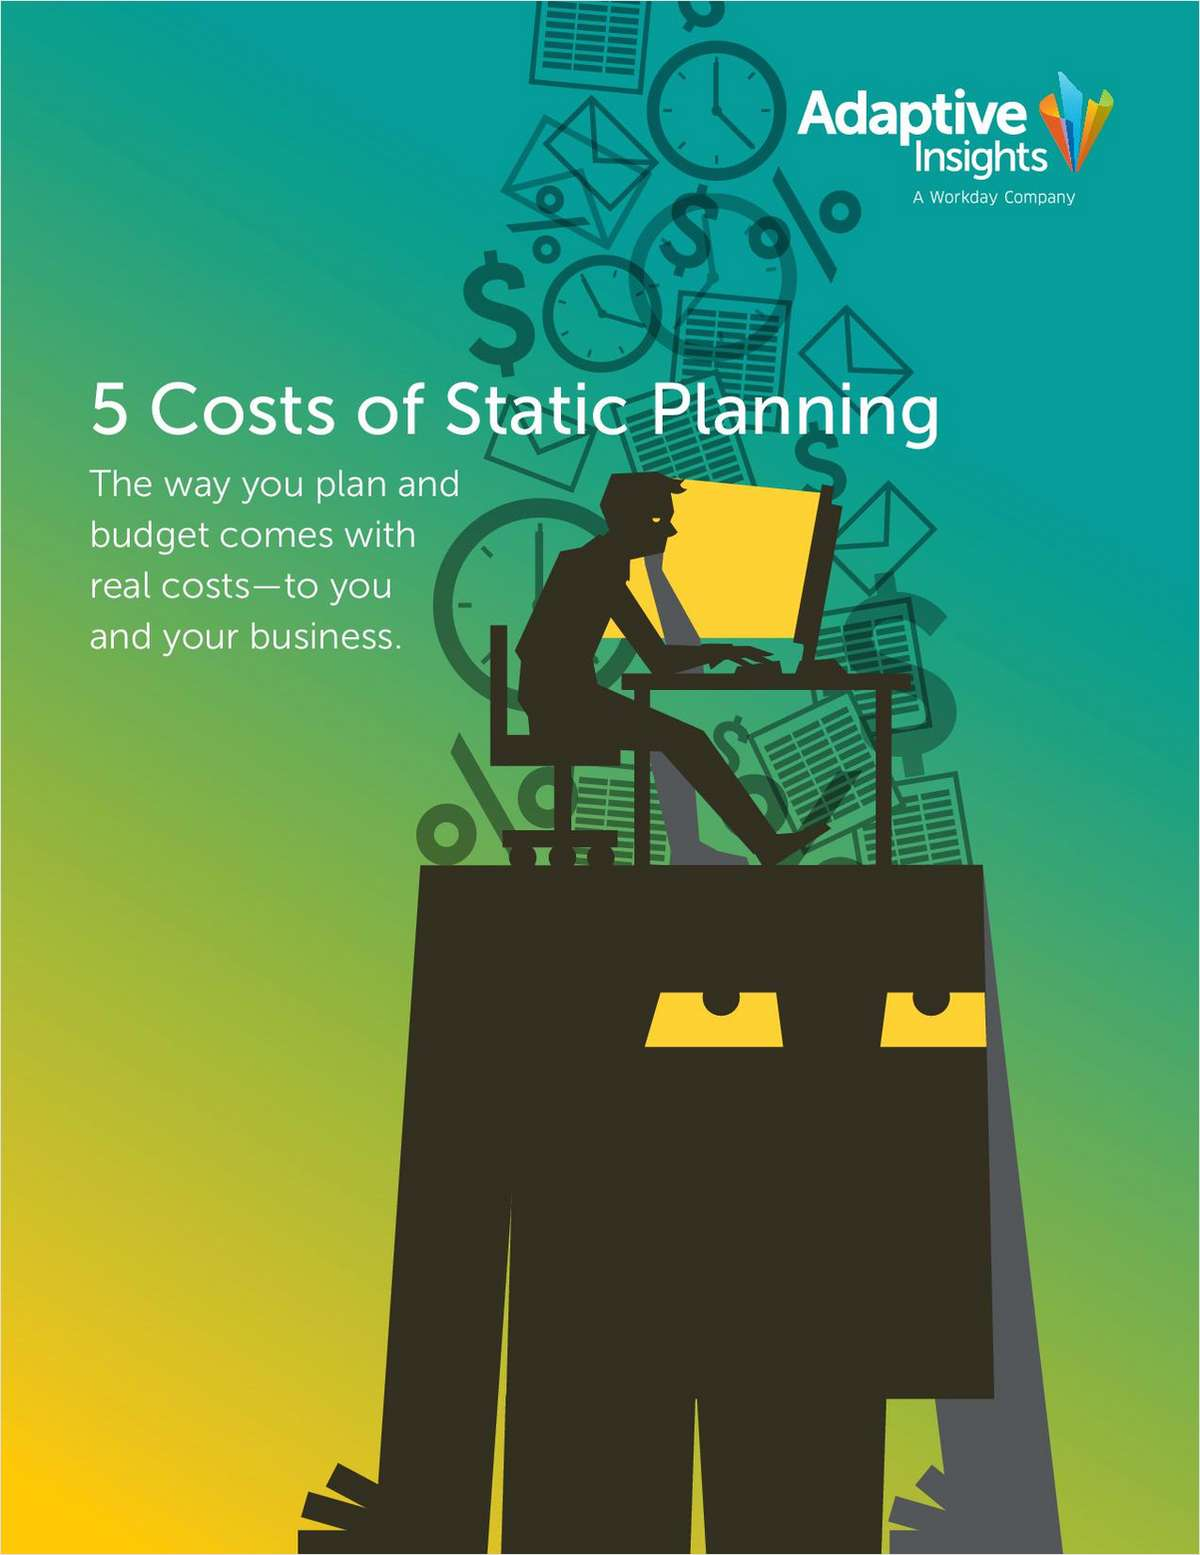 The Five Costs of Static Planning